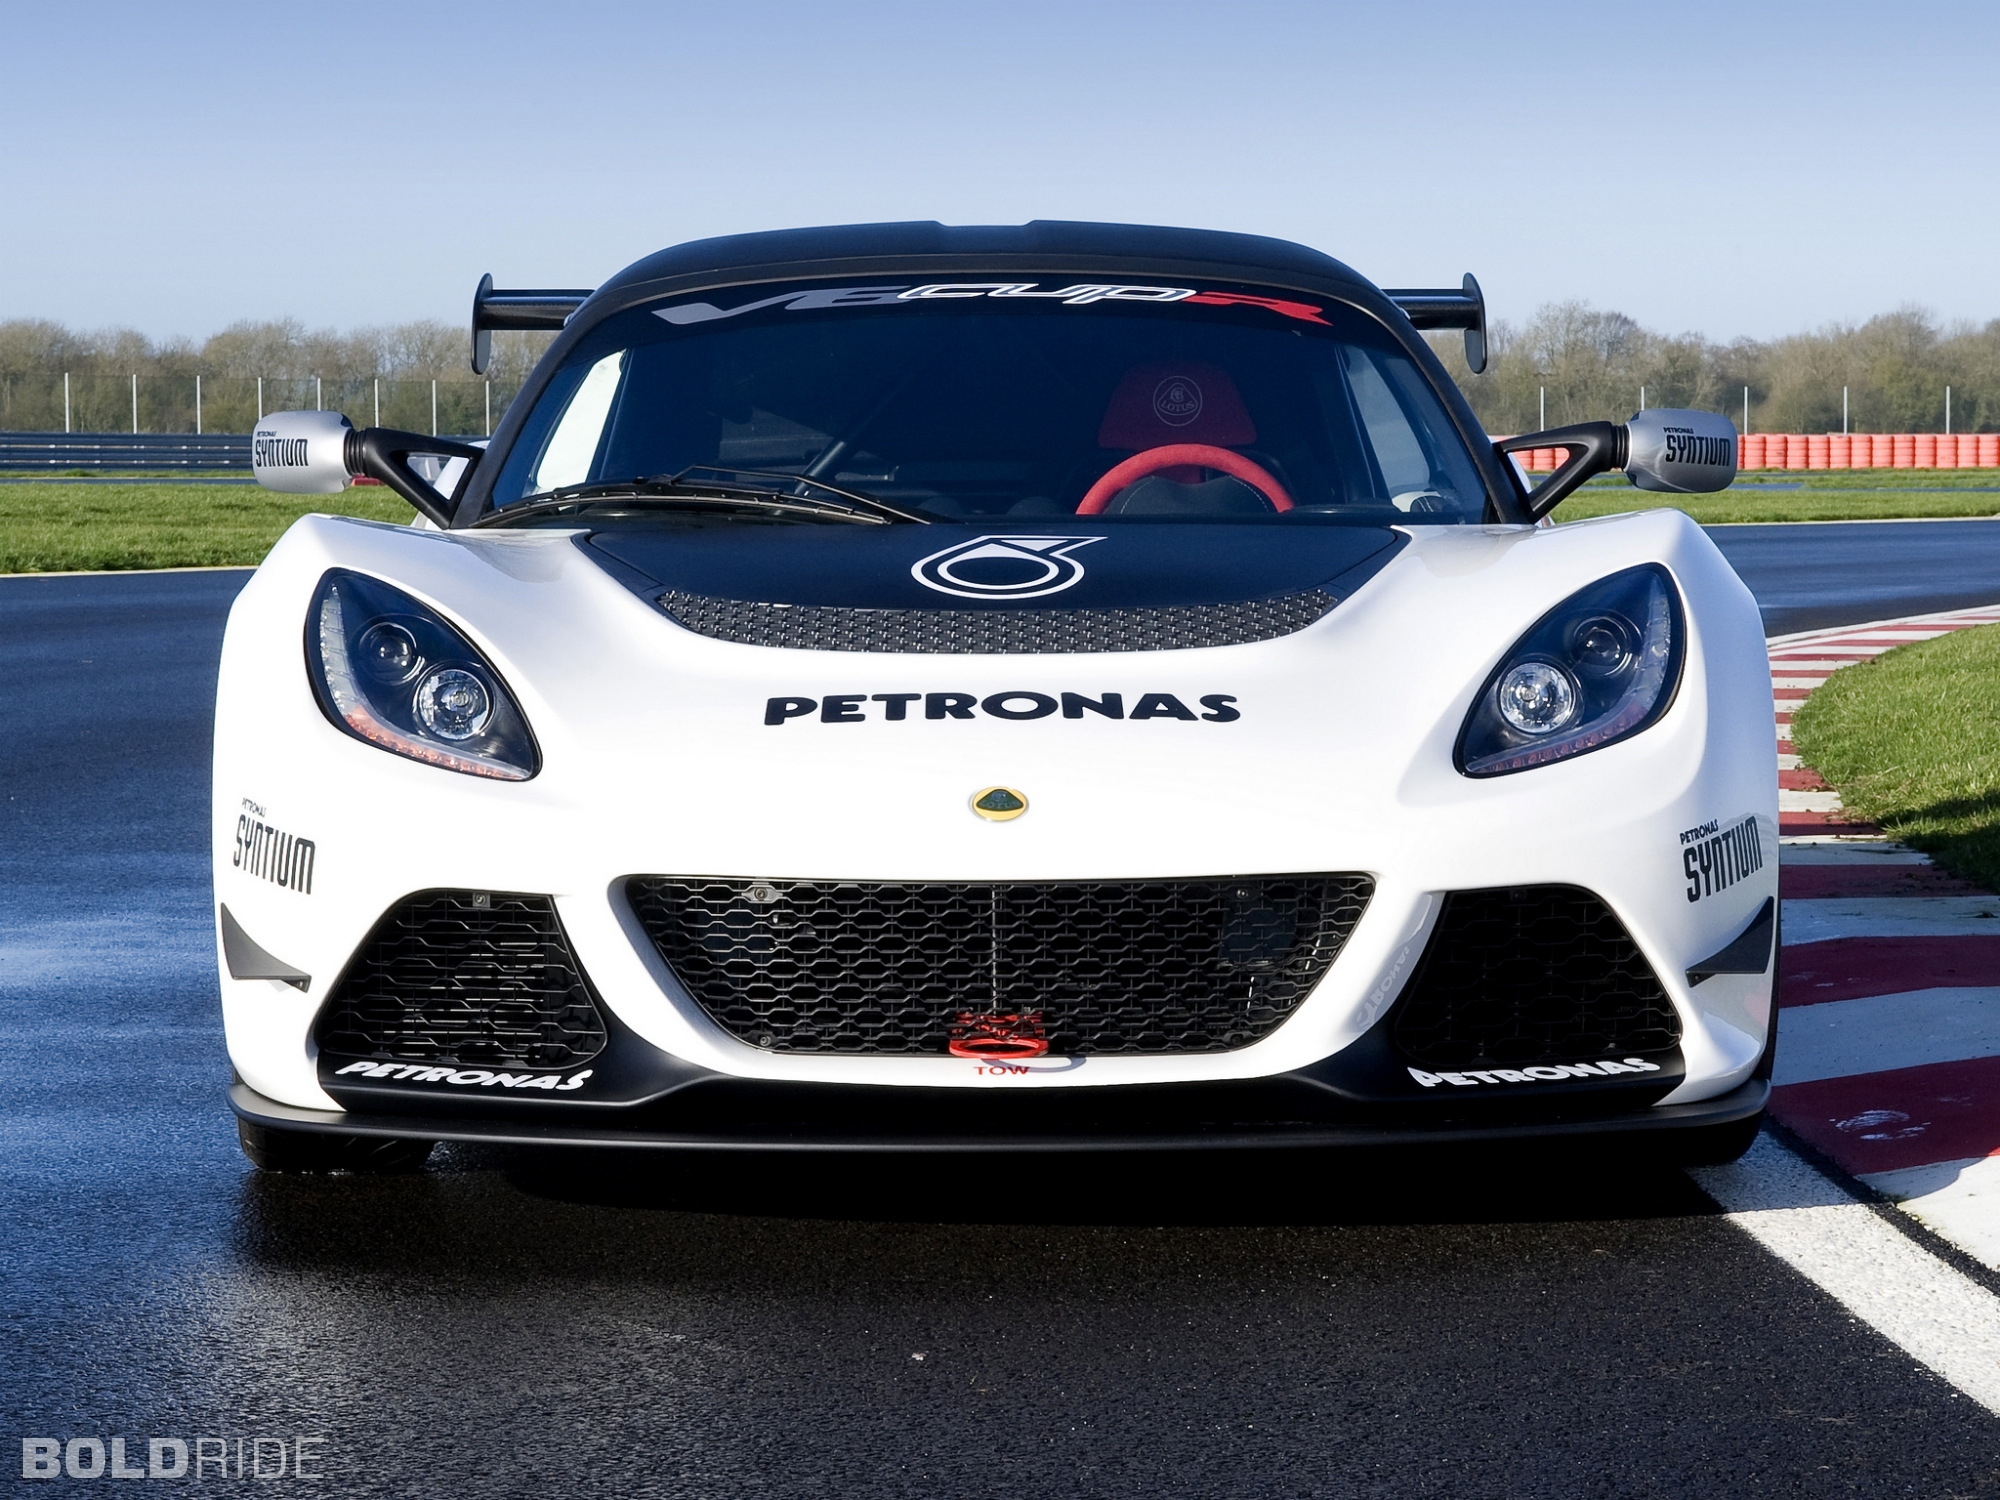 2013 Lotus Exige V6 Cup R Boldride.com - Pictures, Wallpapers